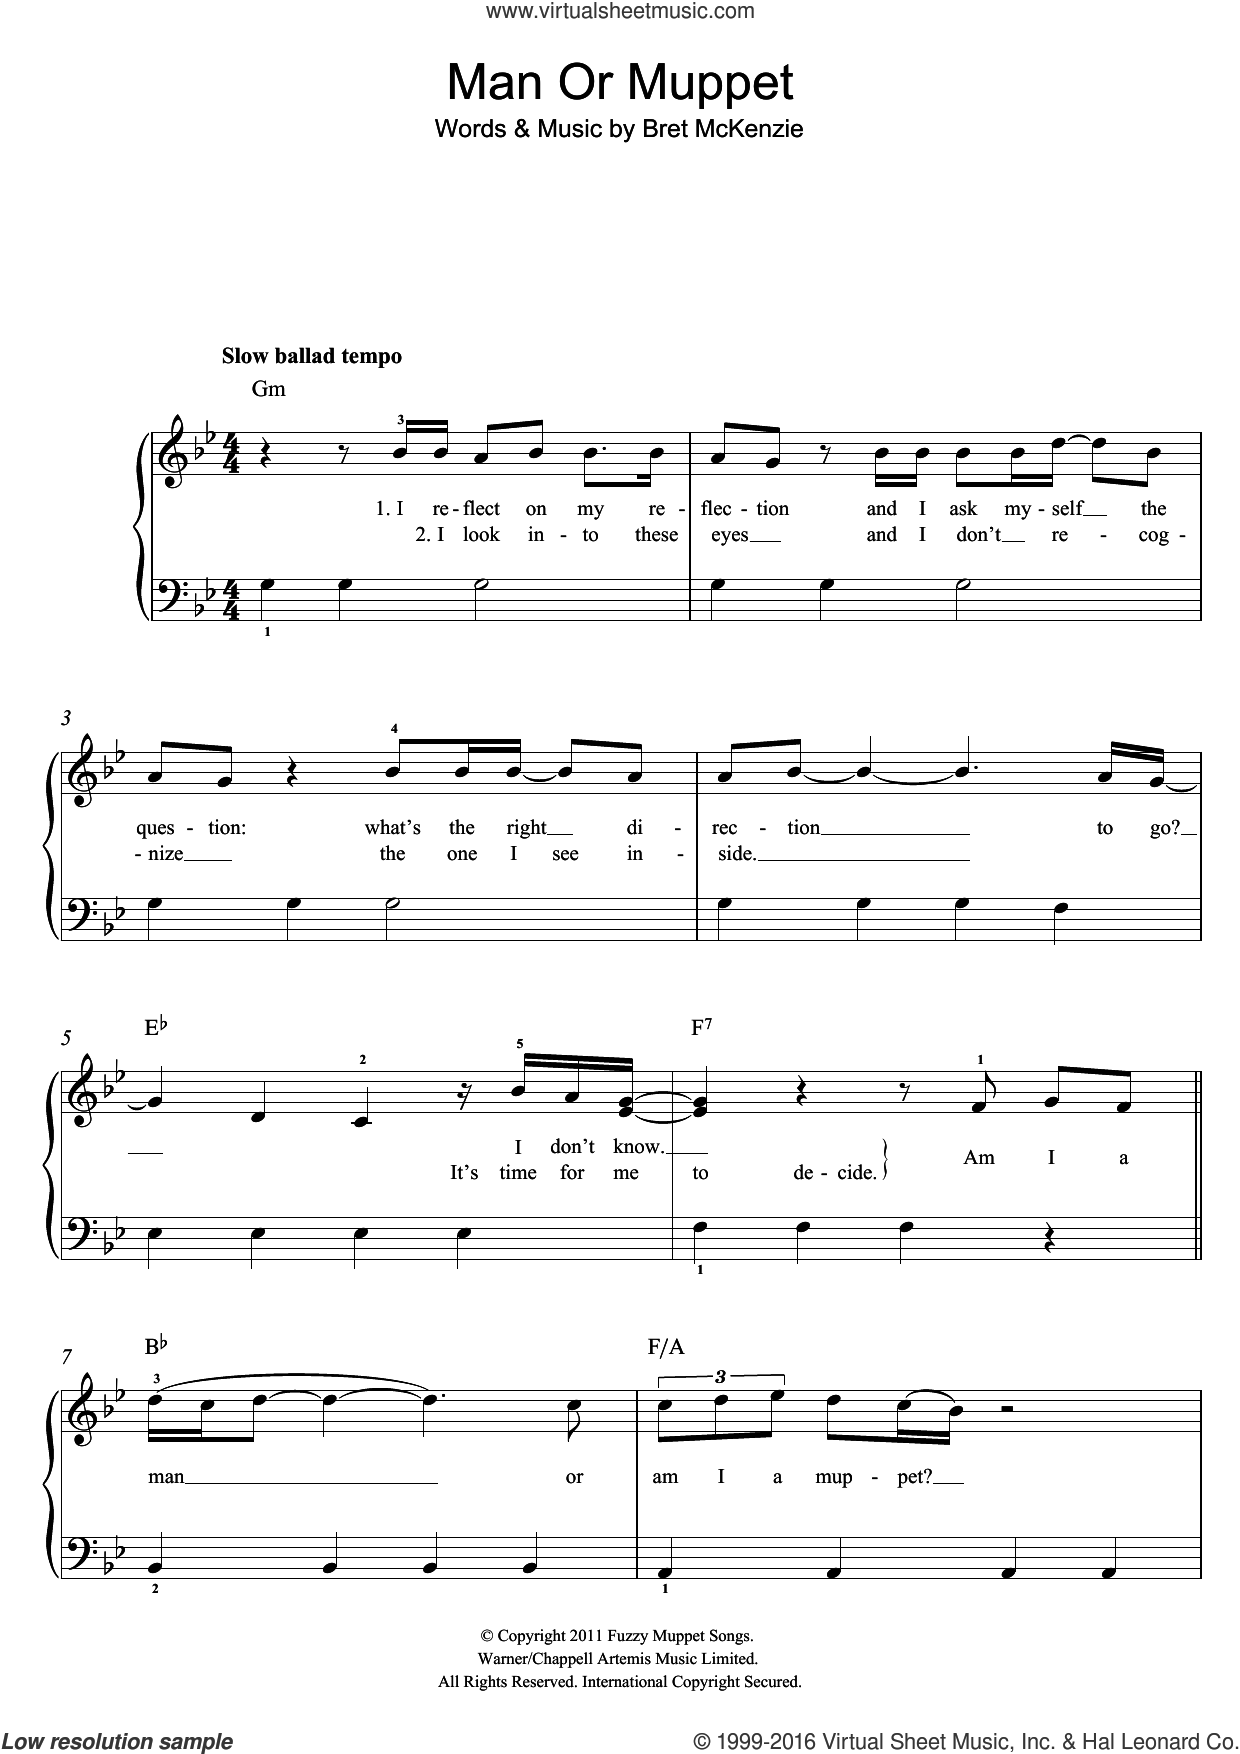 Man Or Muppet sheet music for piano solo by Jason Segel and Bret McKenzie, easy skill level